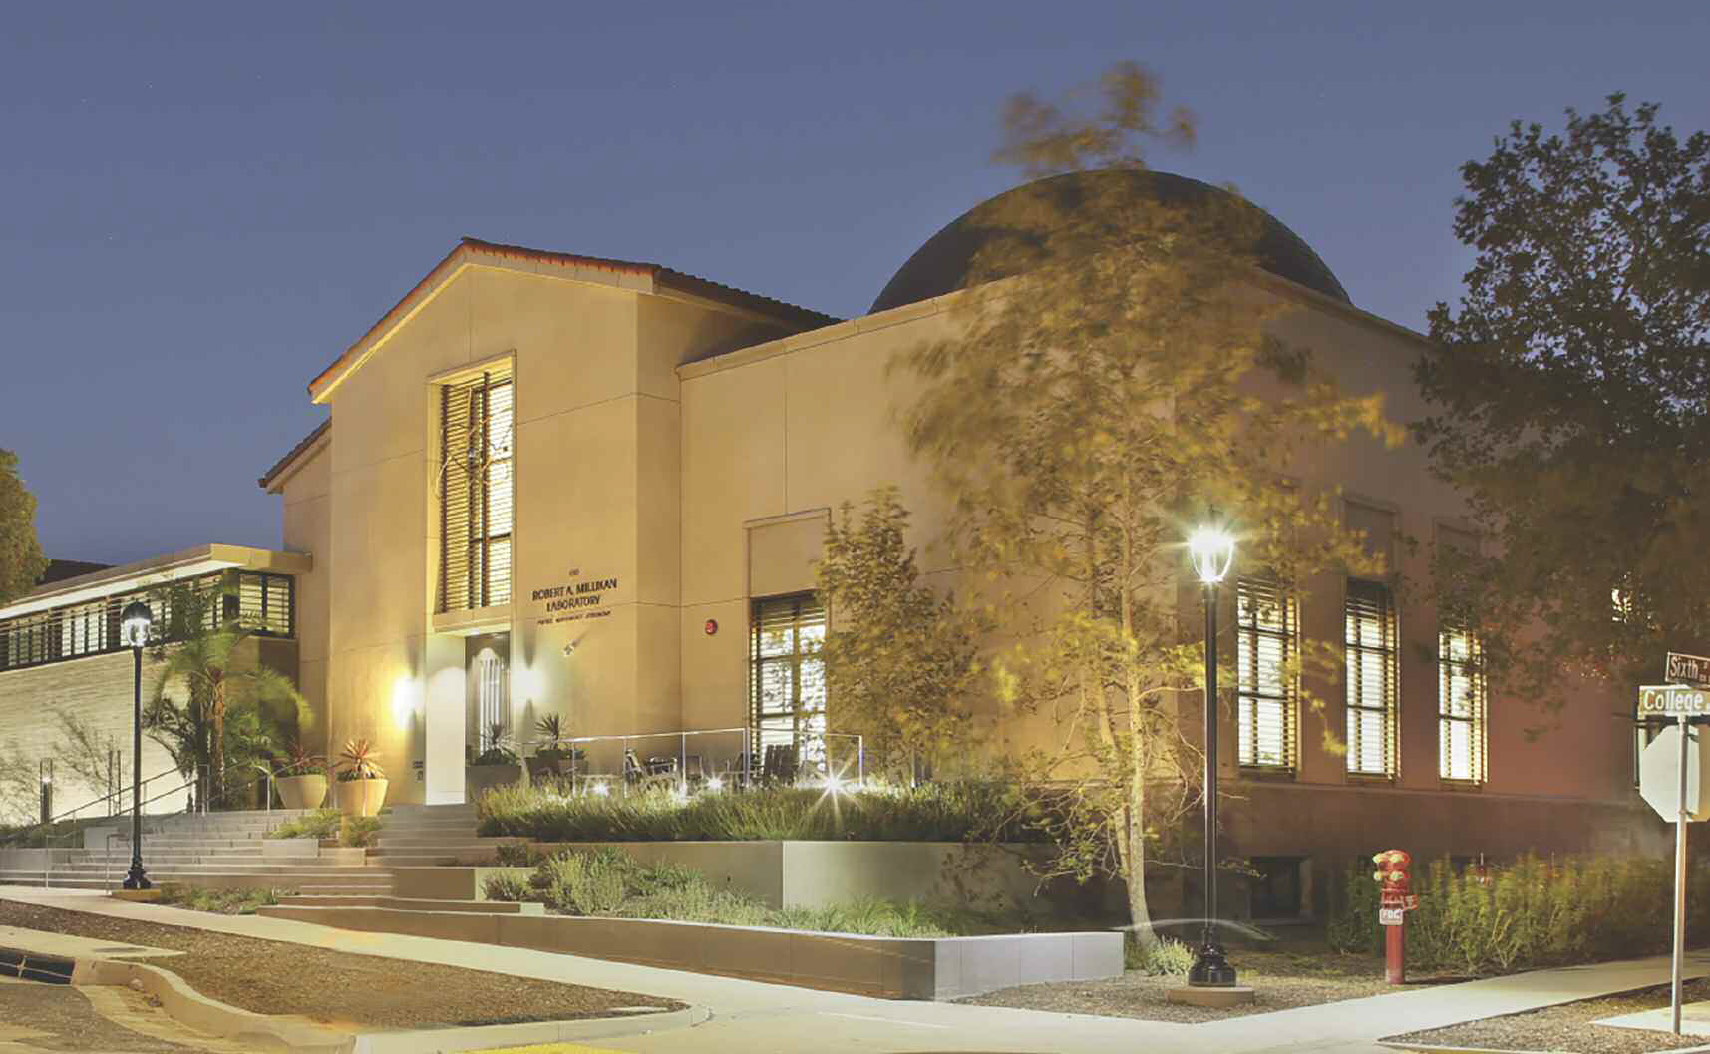 Millikan Laboratory lit up at night